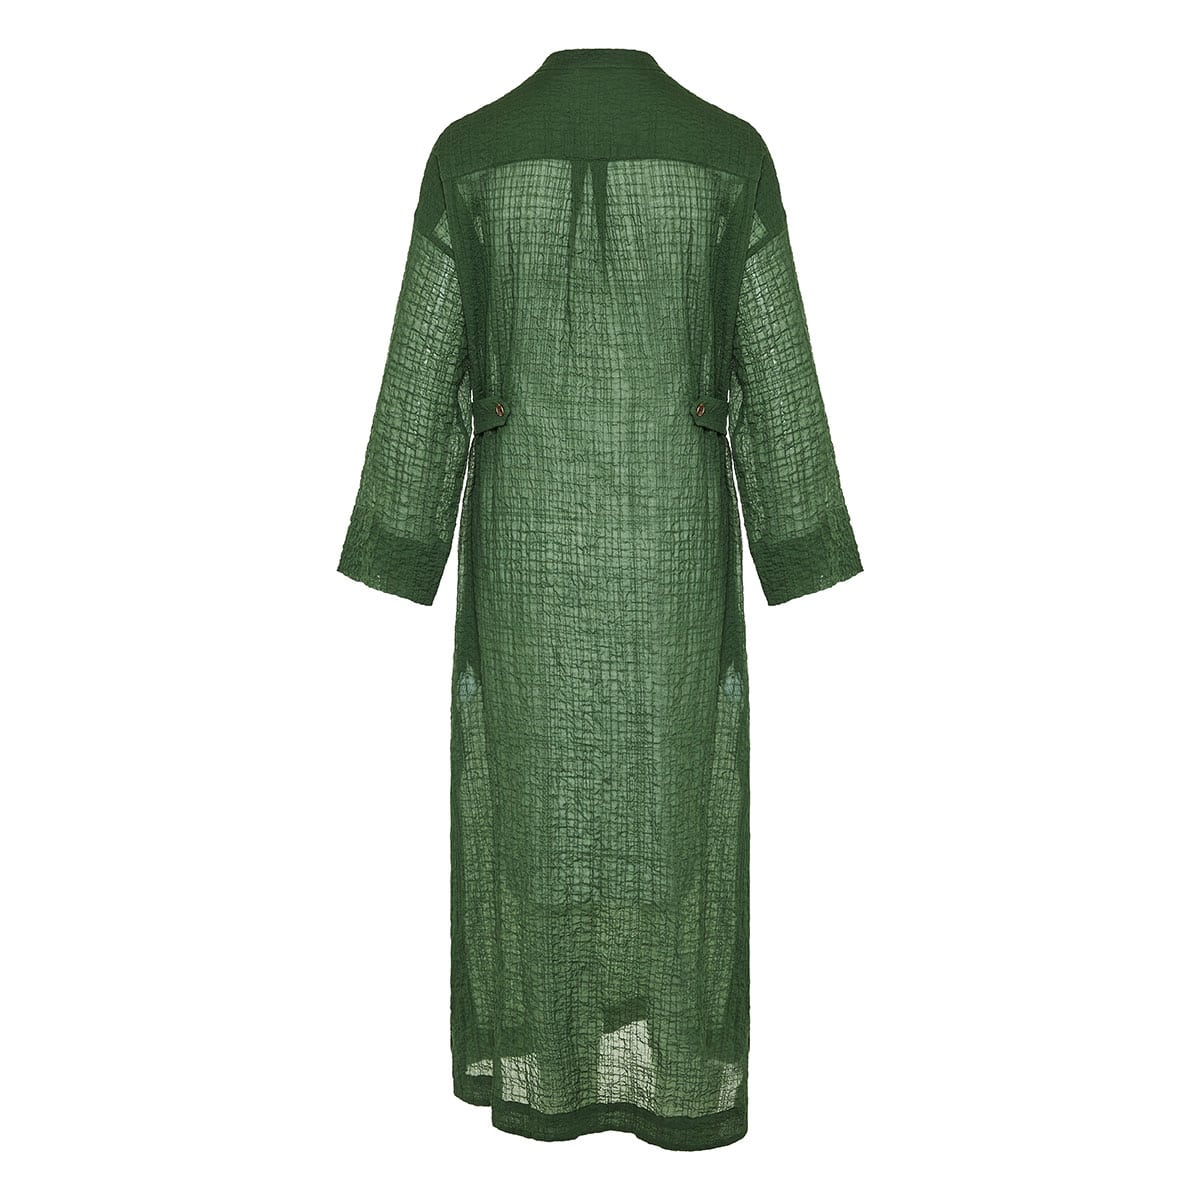 August long voile kaftan